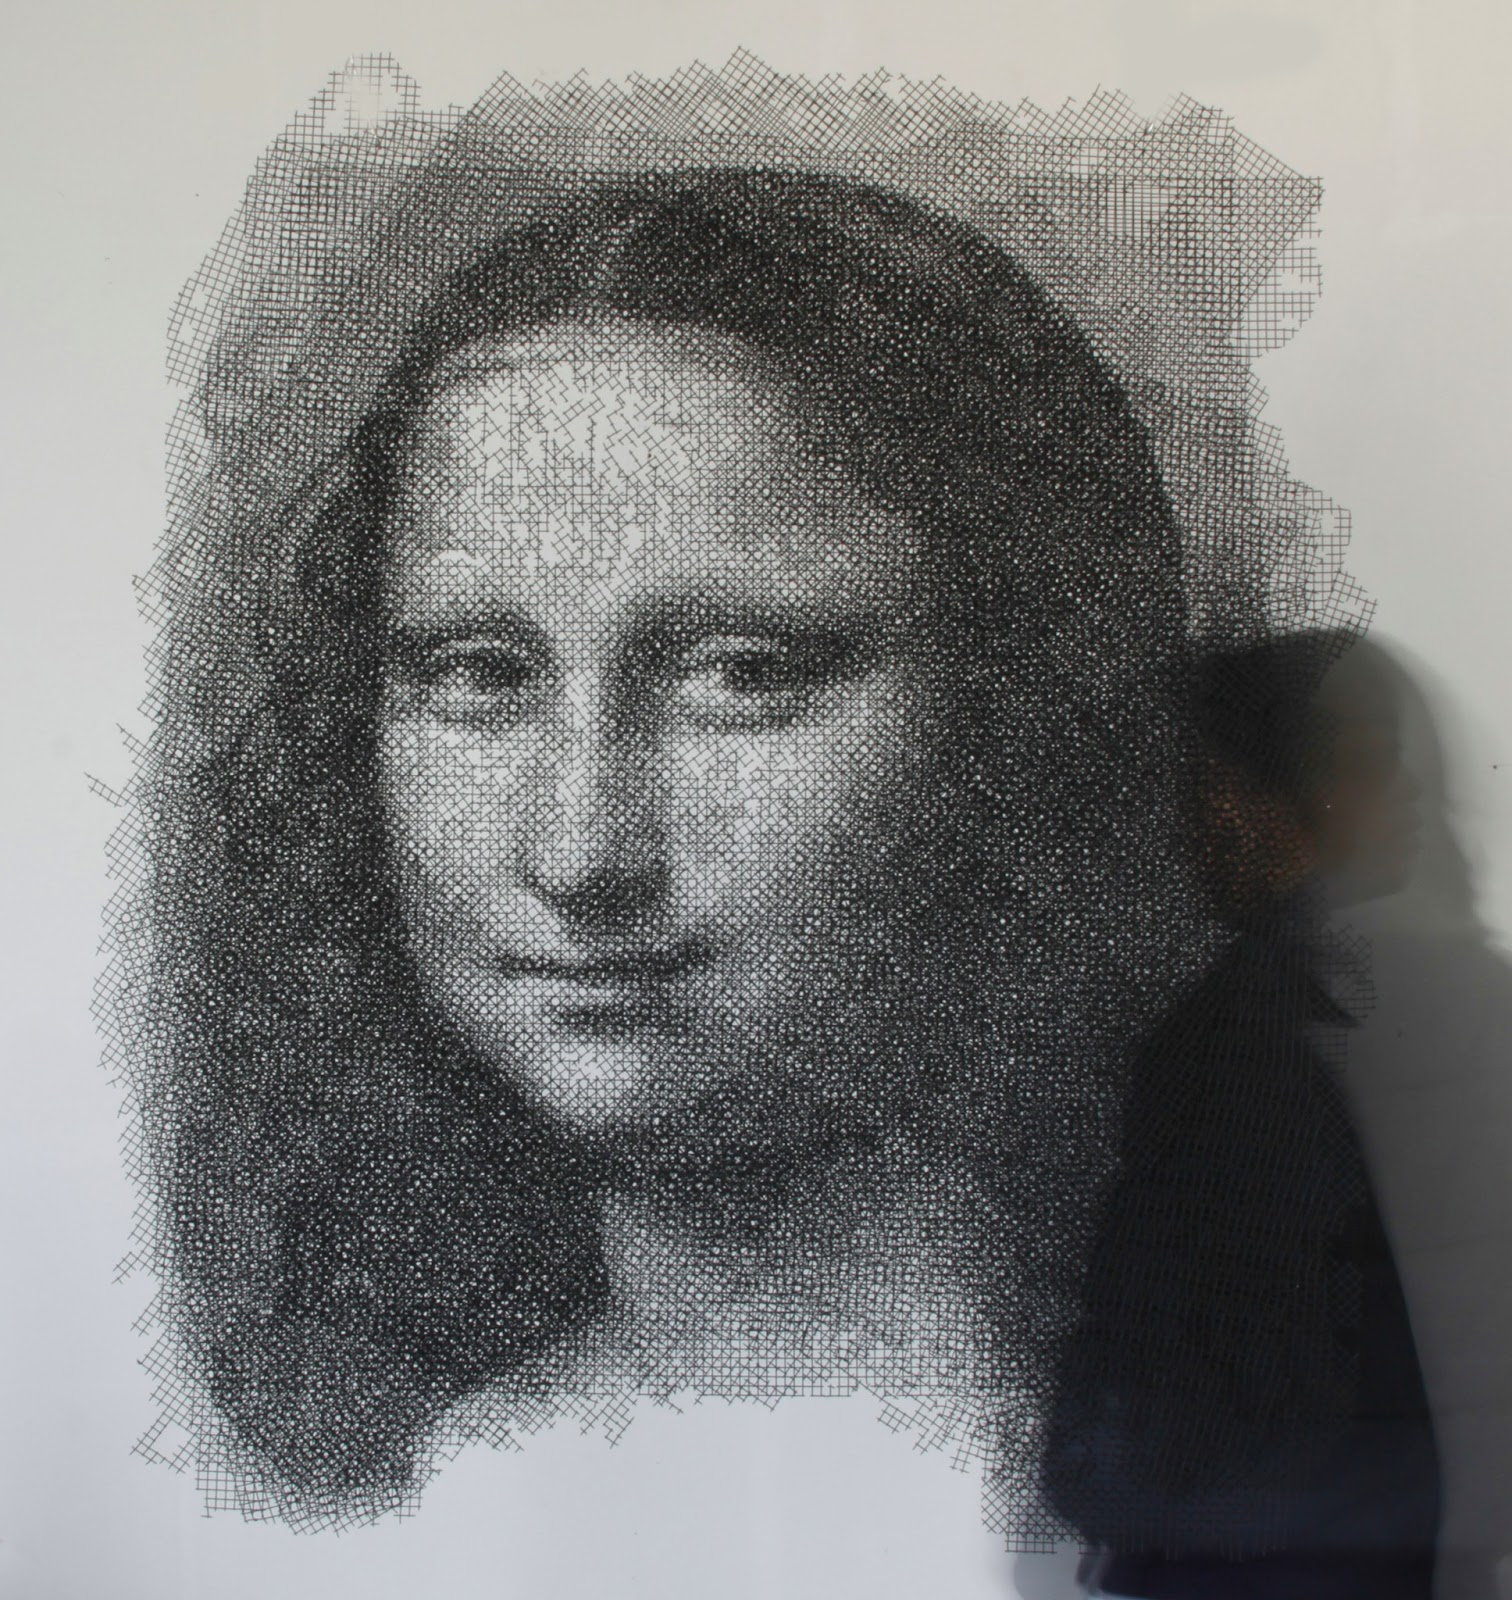 'Mona Lisa' by Seung Mo Park – wire sculpture